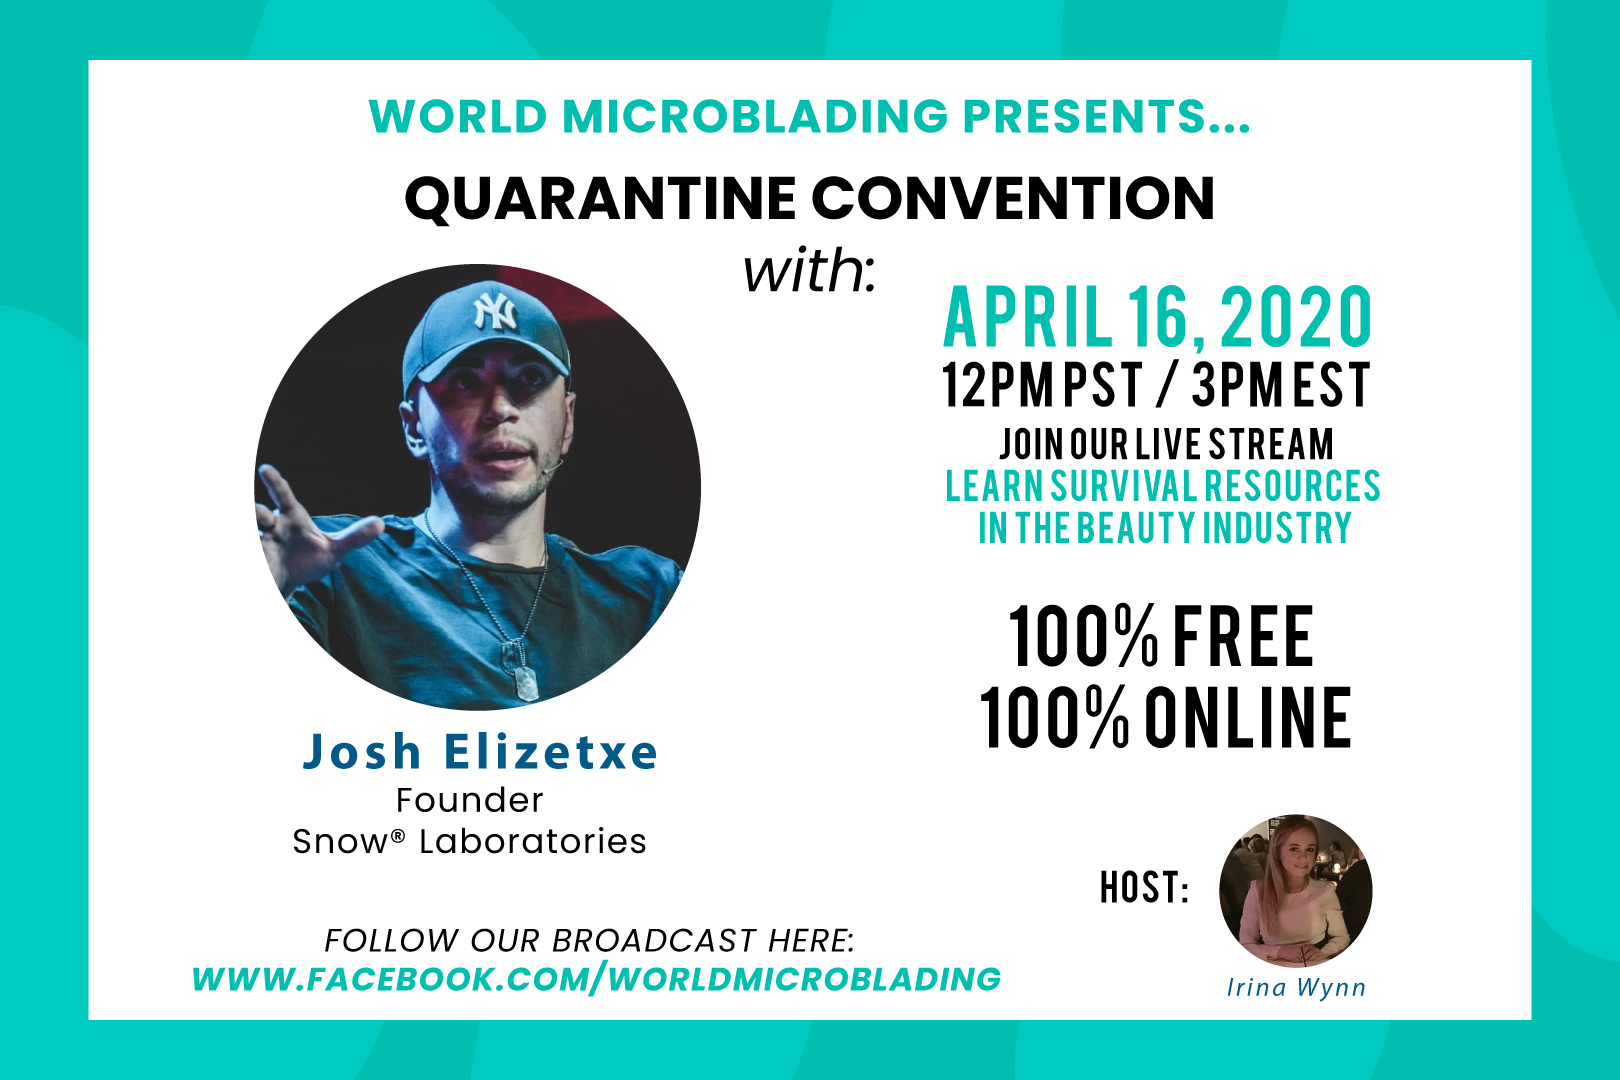 Josh Elizetxe: LIVE at the Quarantine Convention for the Beauty Industry